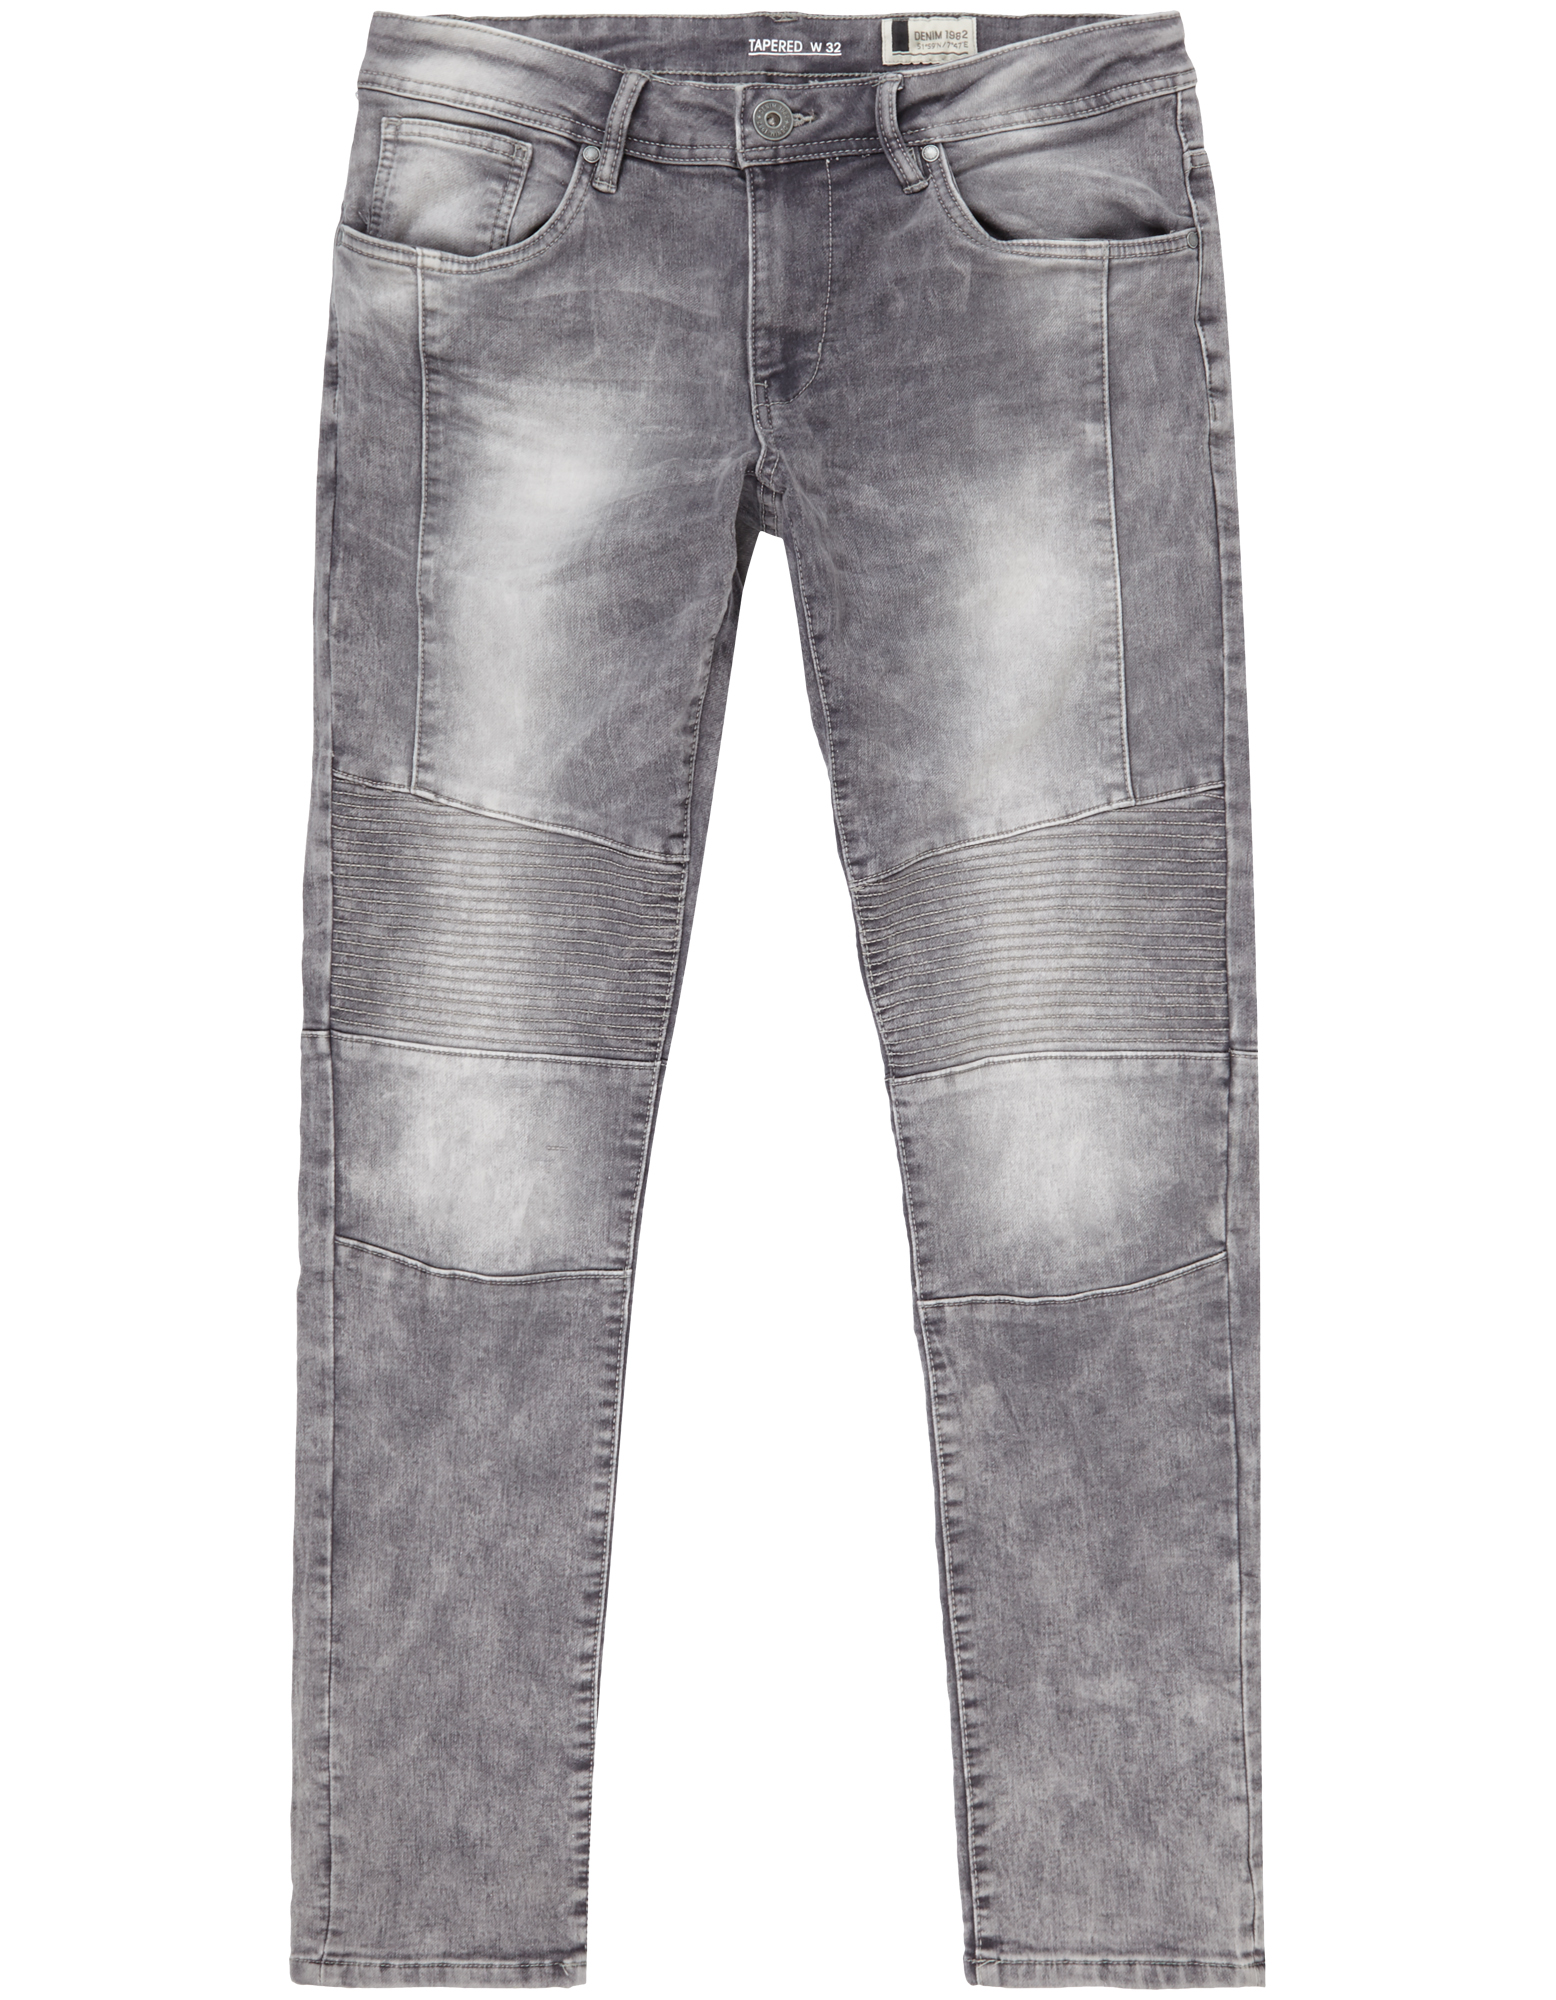 Herren Tapered Fit Jeans im Biker-Look  | 81414631430207